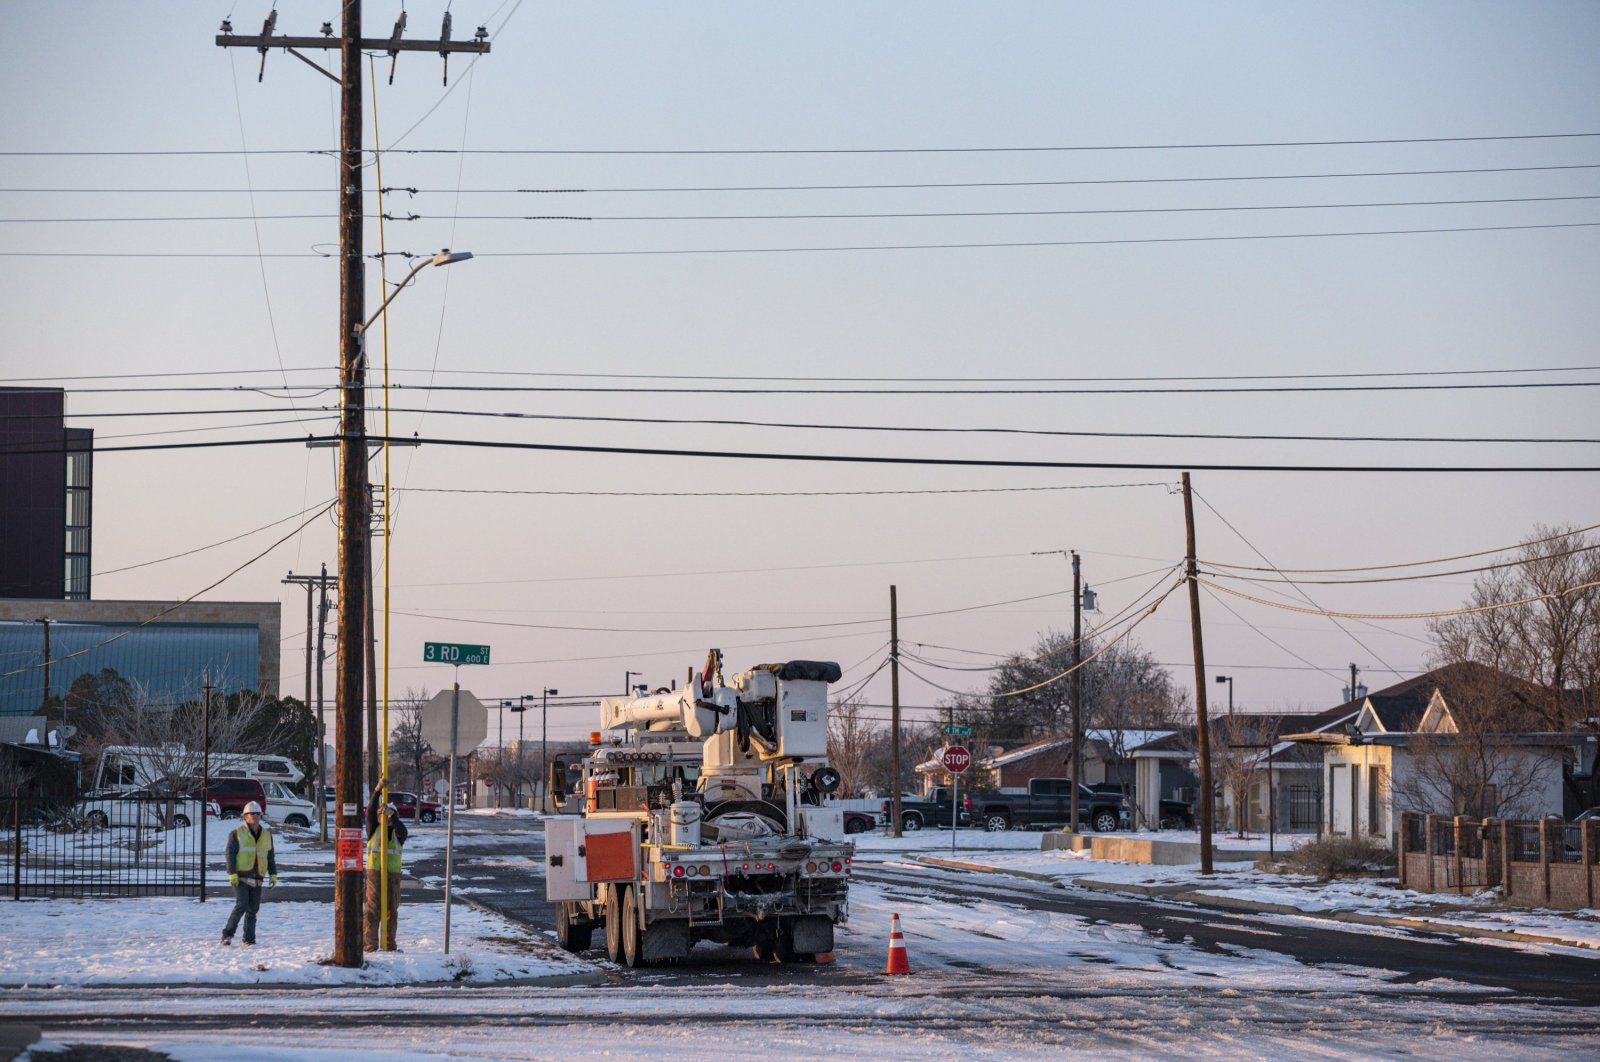 An Oncor electric delivery crew works on restoring power to a neighborhood following the winter storm that passed through Texas, Odessa, TX, the U.S., Feb. 18, 2021. (AP Photo)